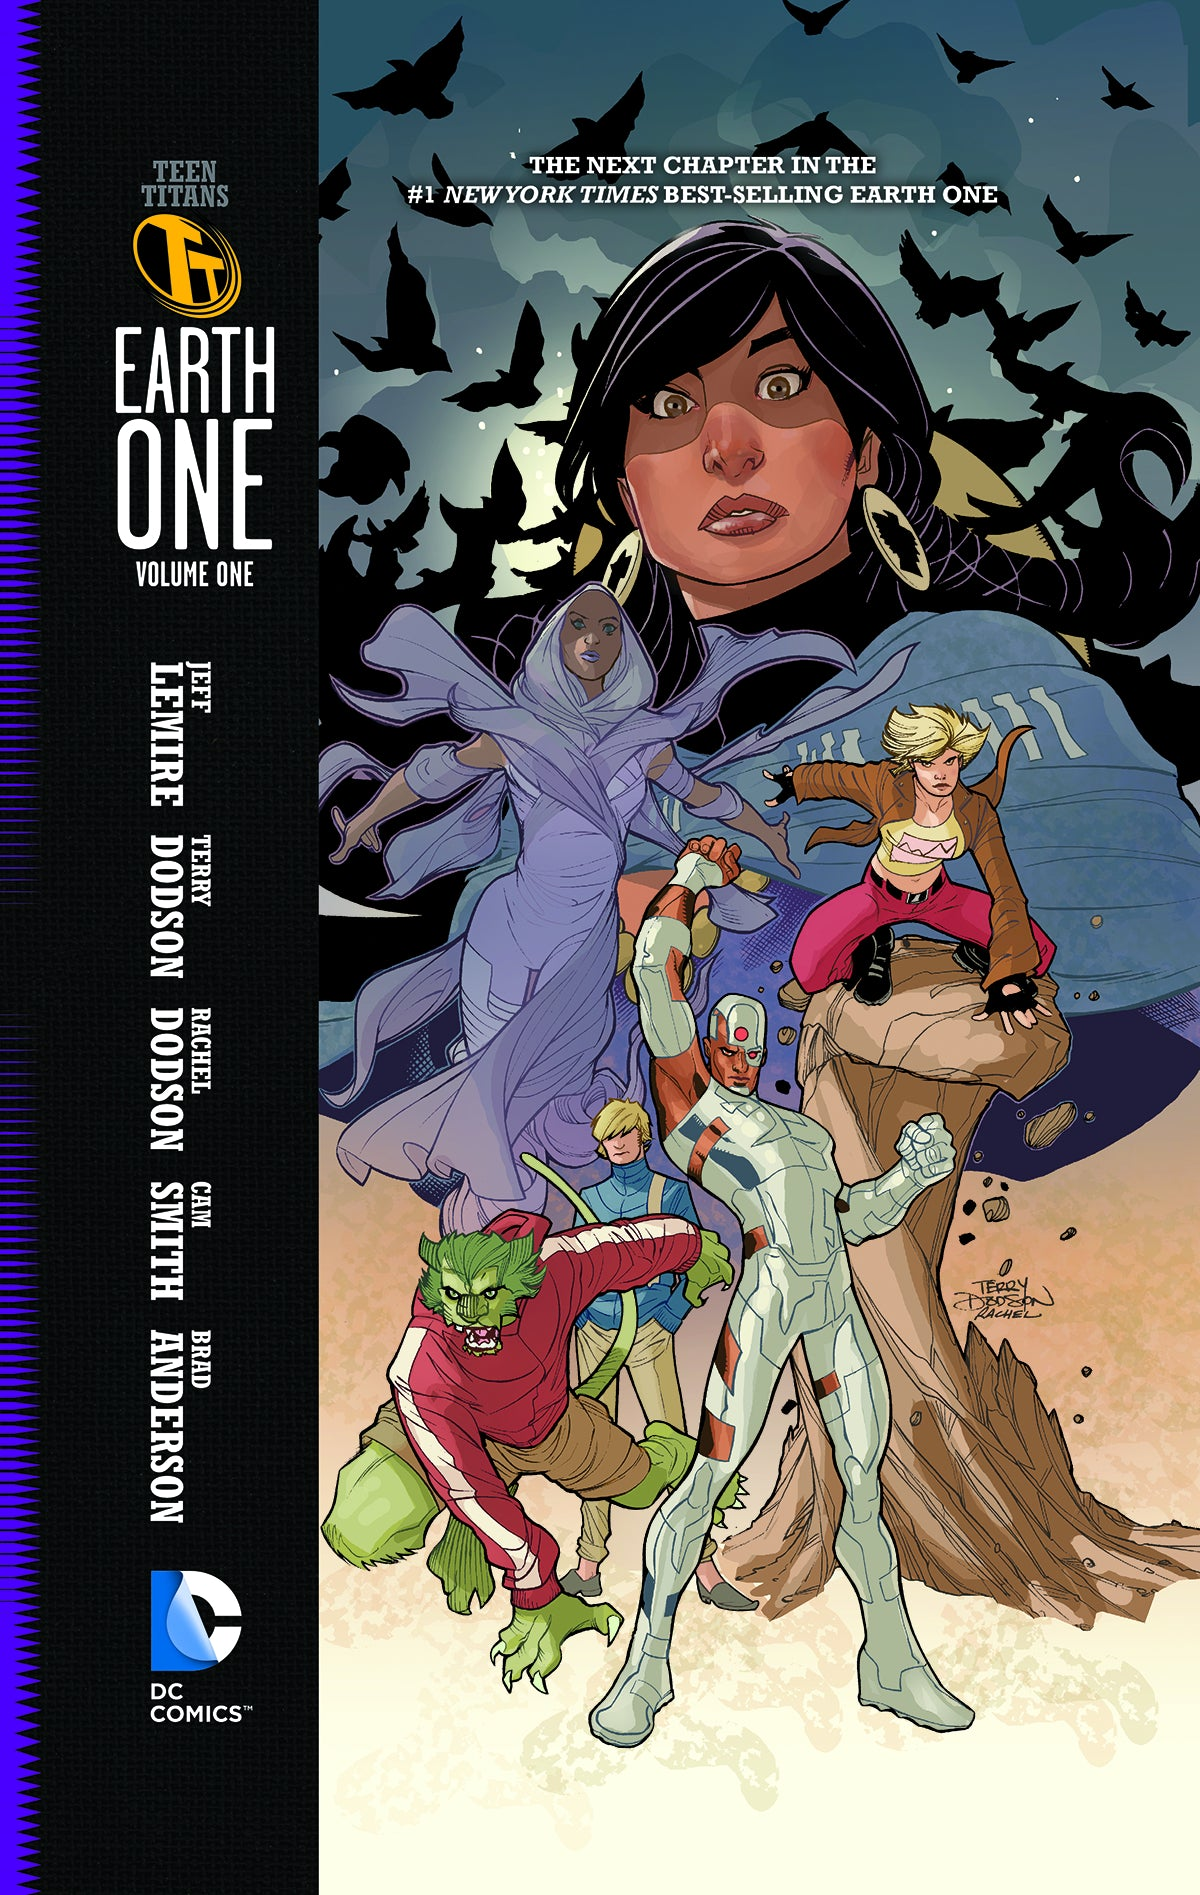 TEEN TITANS EARTH ONE TP VOL 01 | Game Master's Emporium (The New GME)